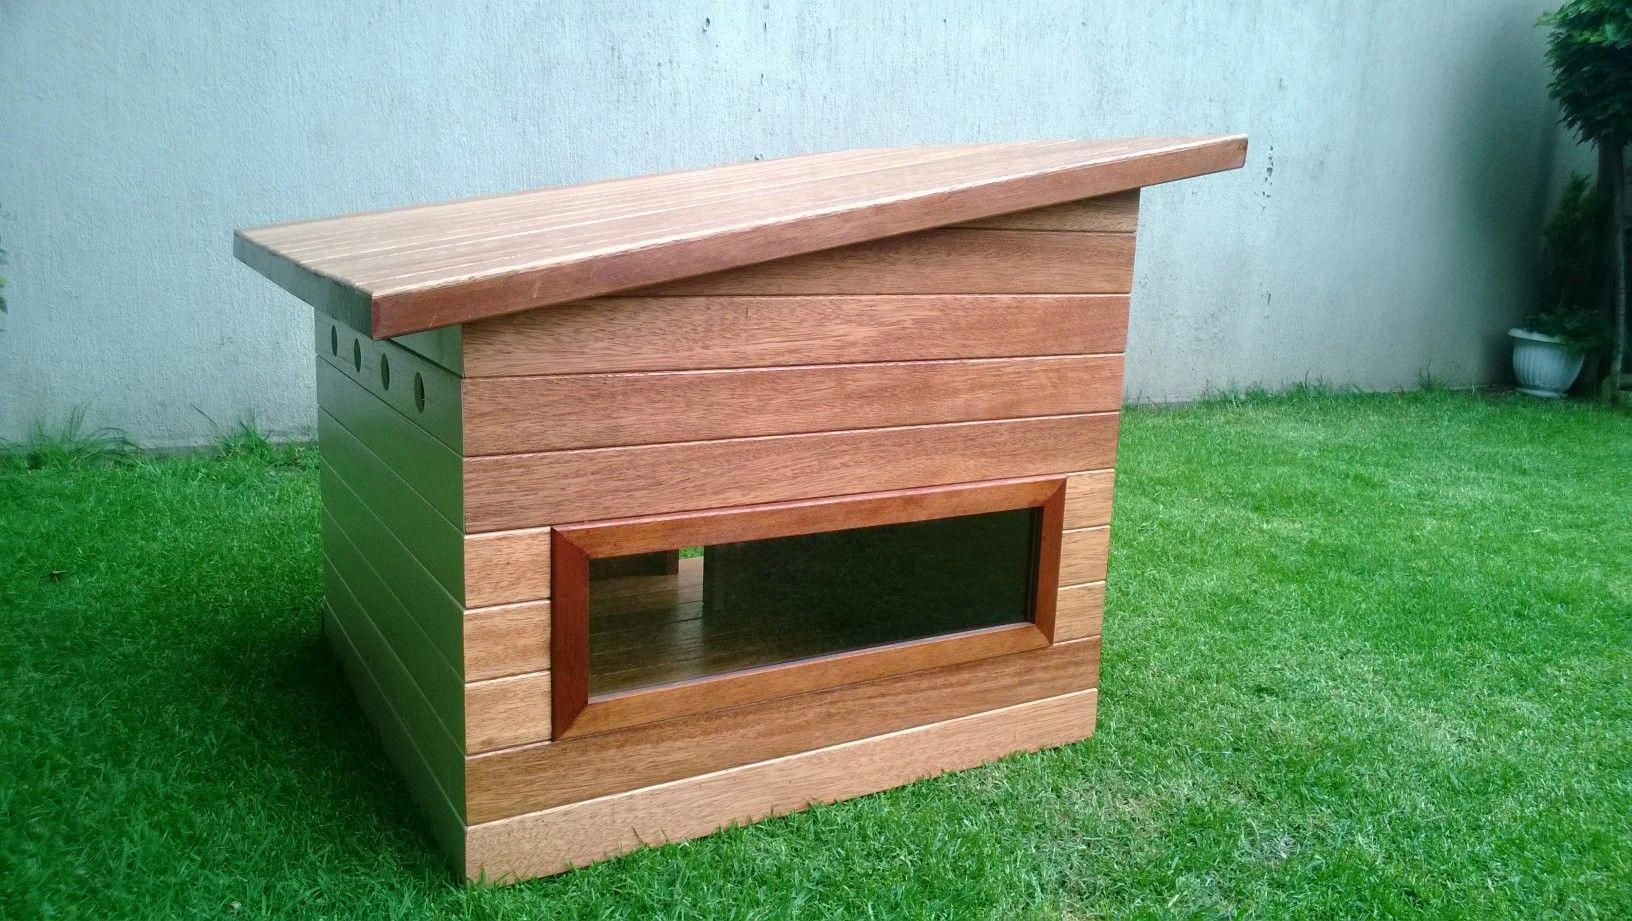 Woodworking Tools Near Me Dog house diy, Cool dog houses, Dog houses